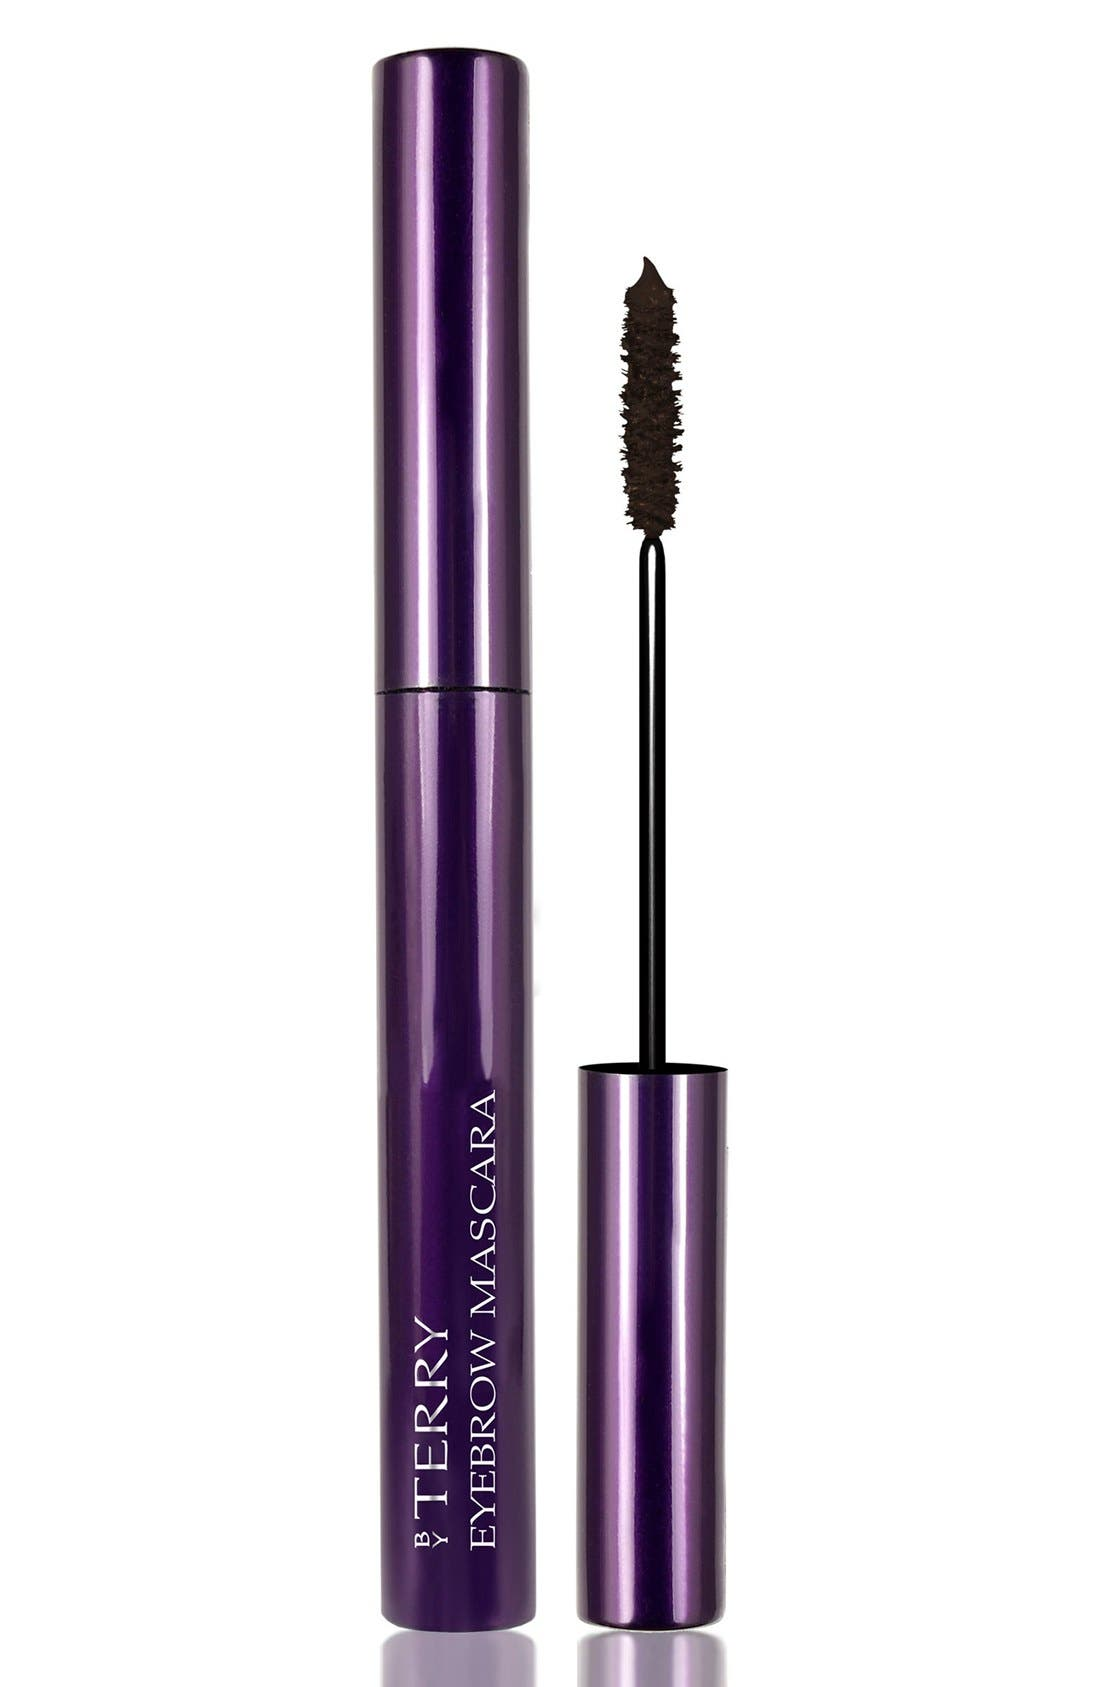 SPACE.NK.apothecary By Terry Eyebrow Mascara,                             Main thumbnail 1, color,                             4 DARK BROWN